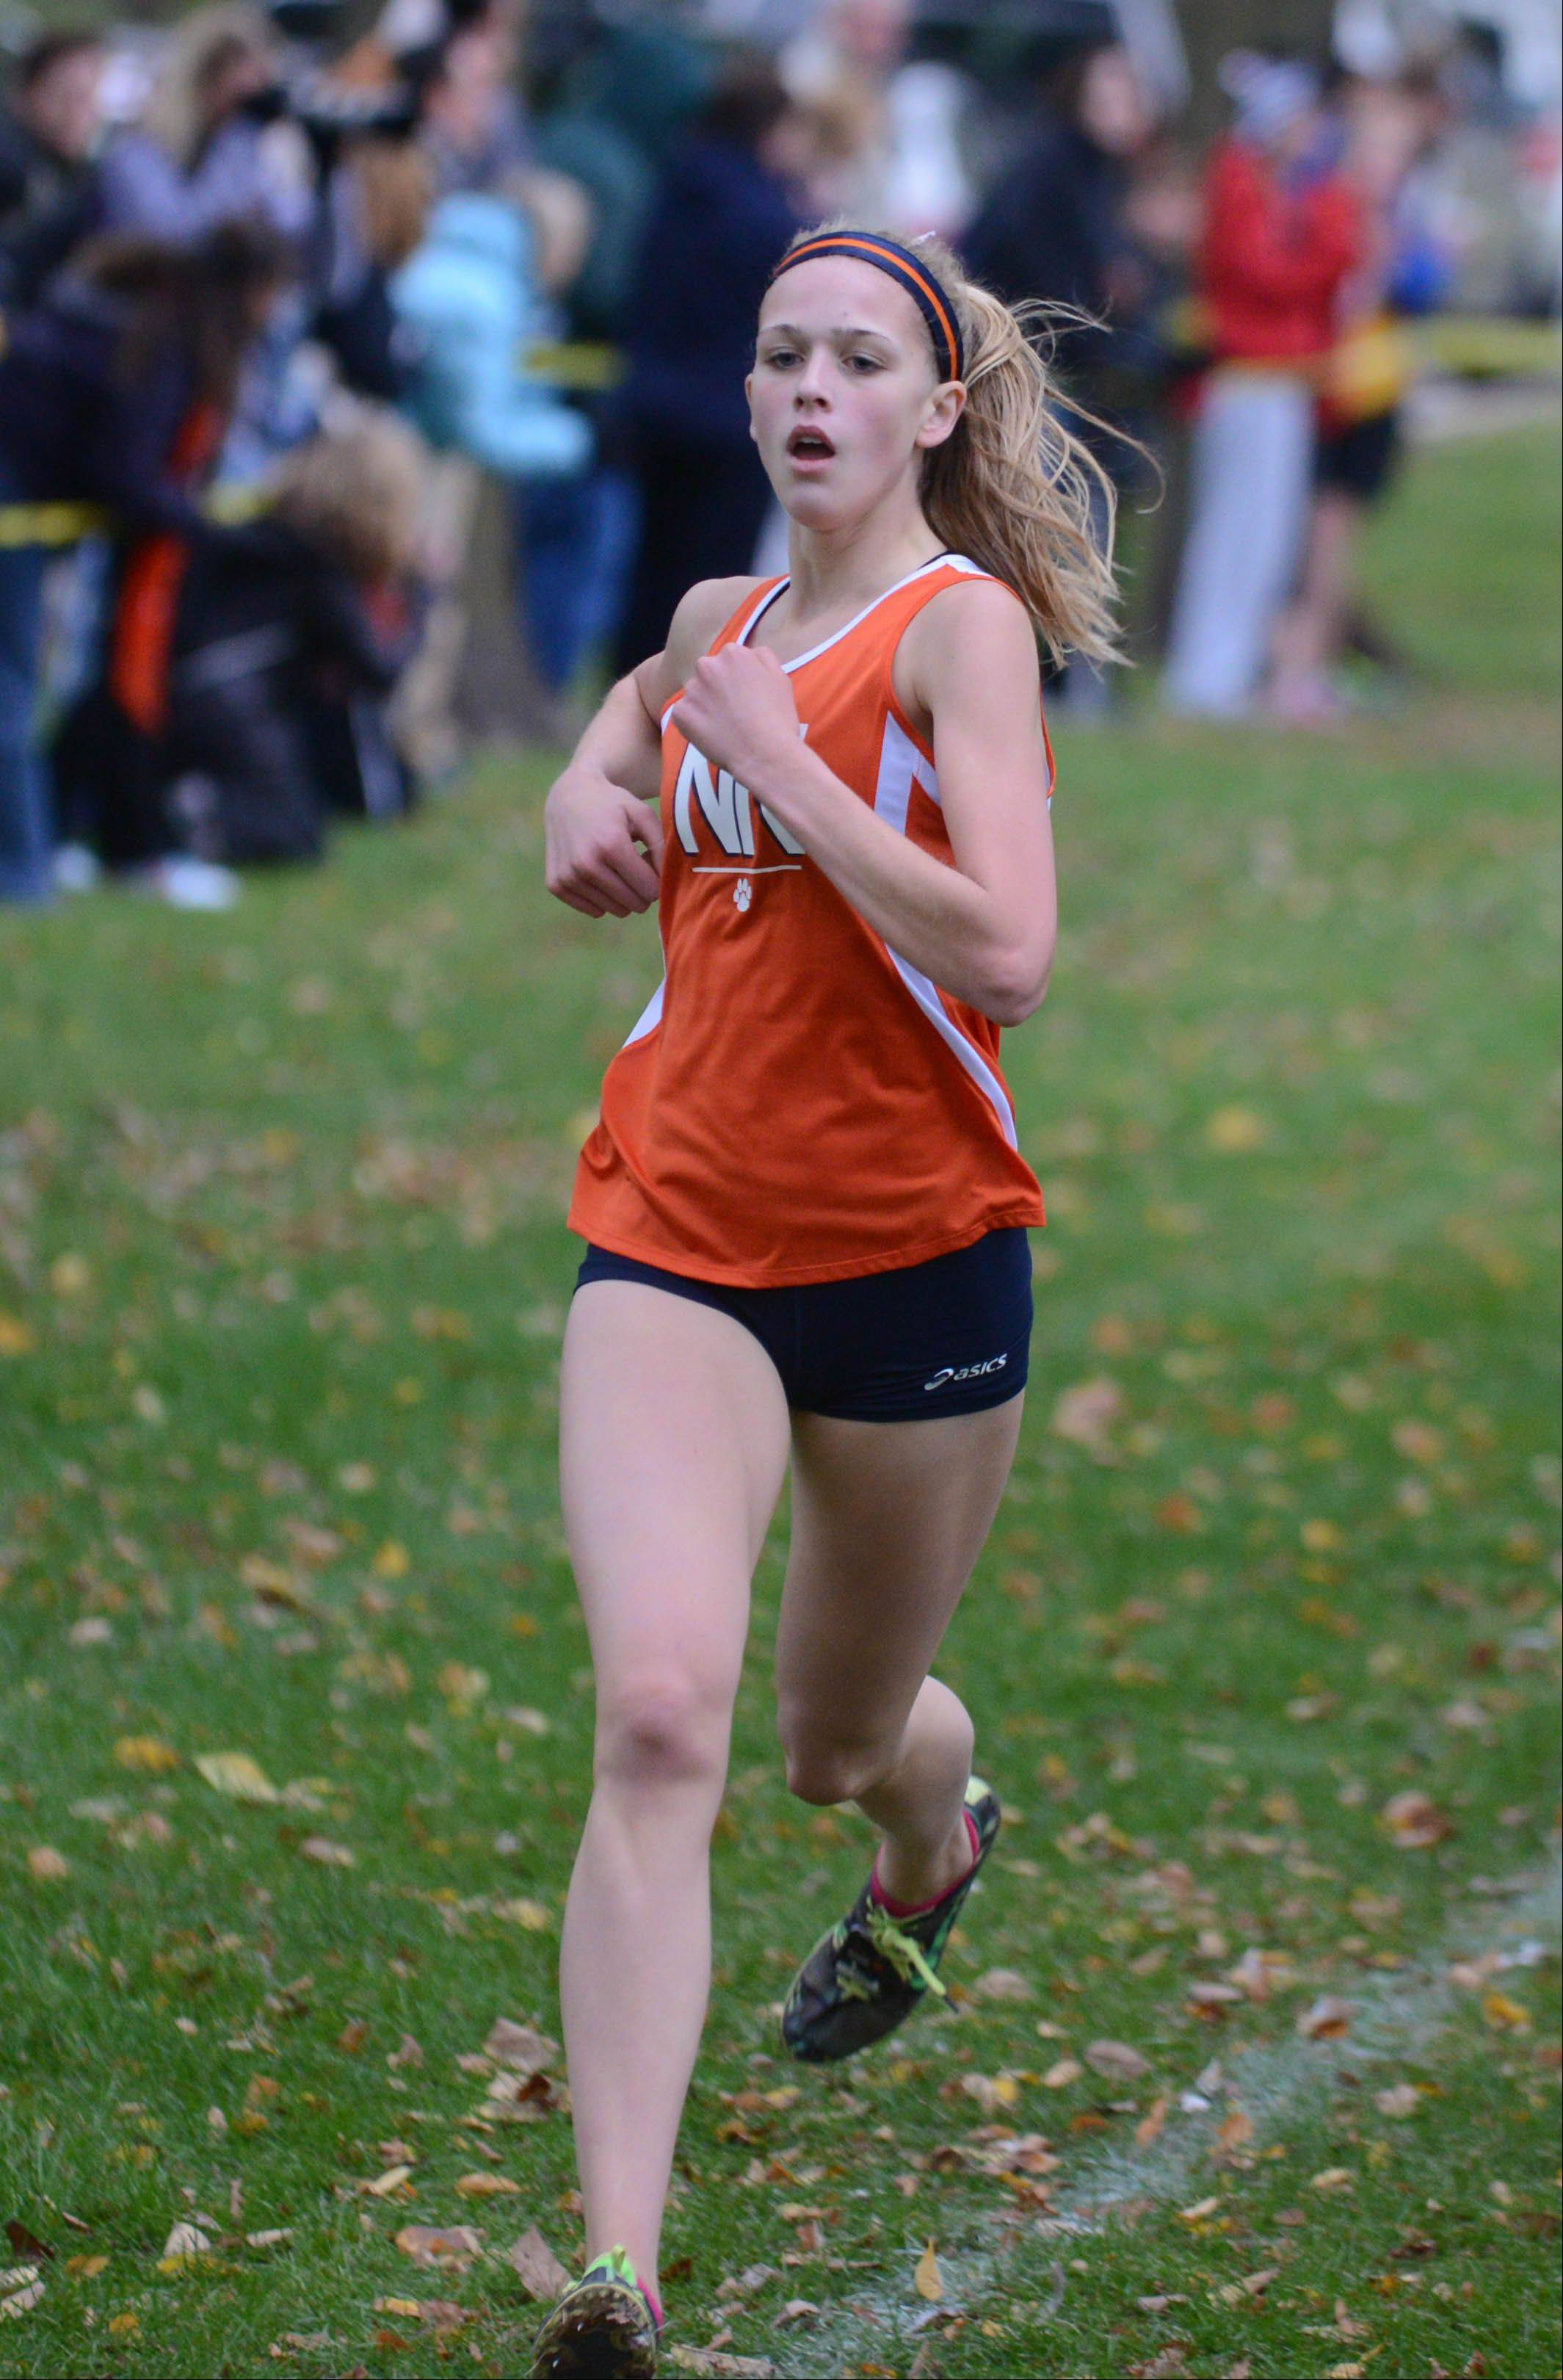 Elen DeTurris of Naperville North wins the DuPage Valley Conference boys and girls cross country meet in Lombard Friday.